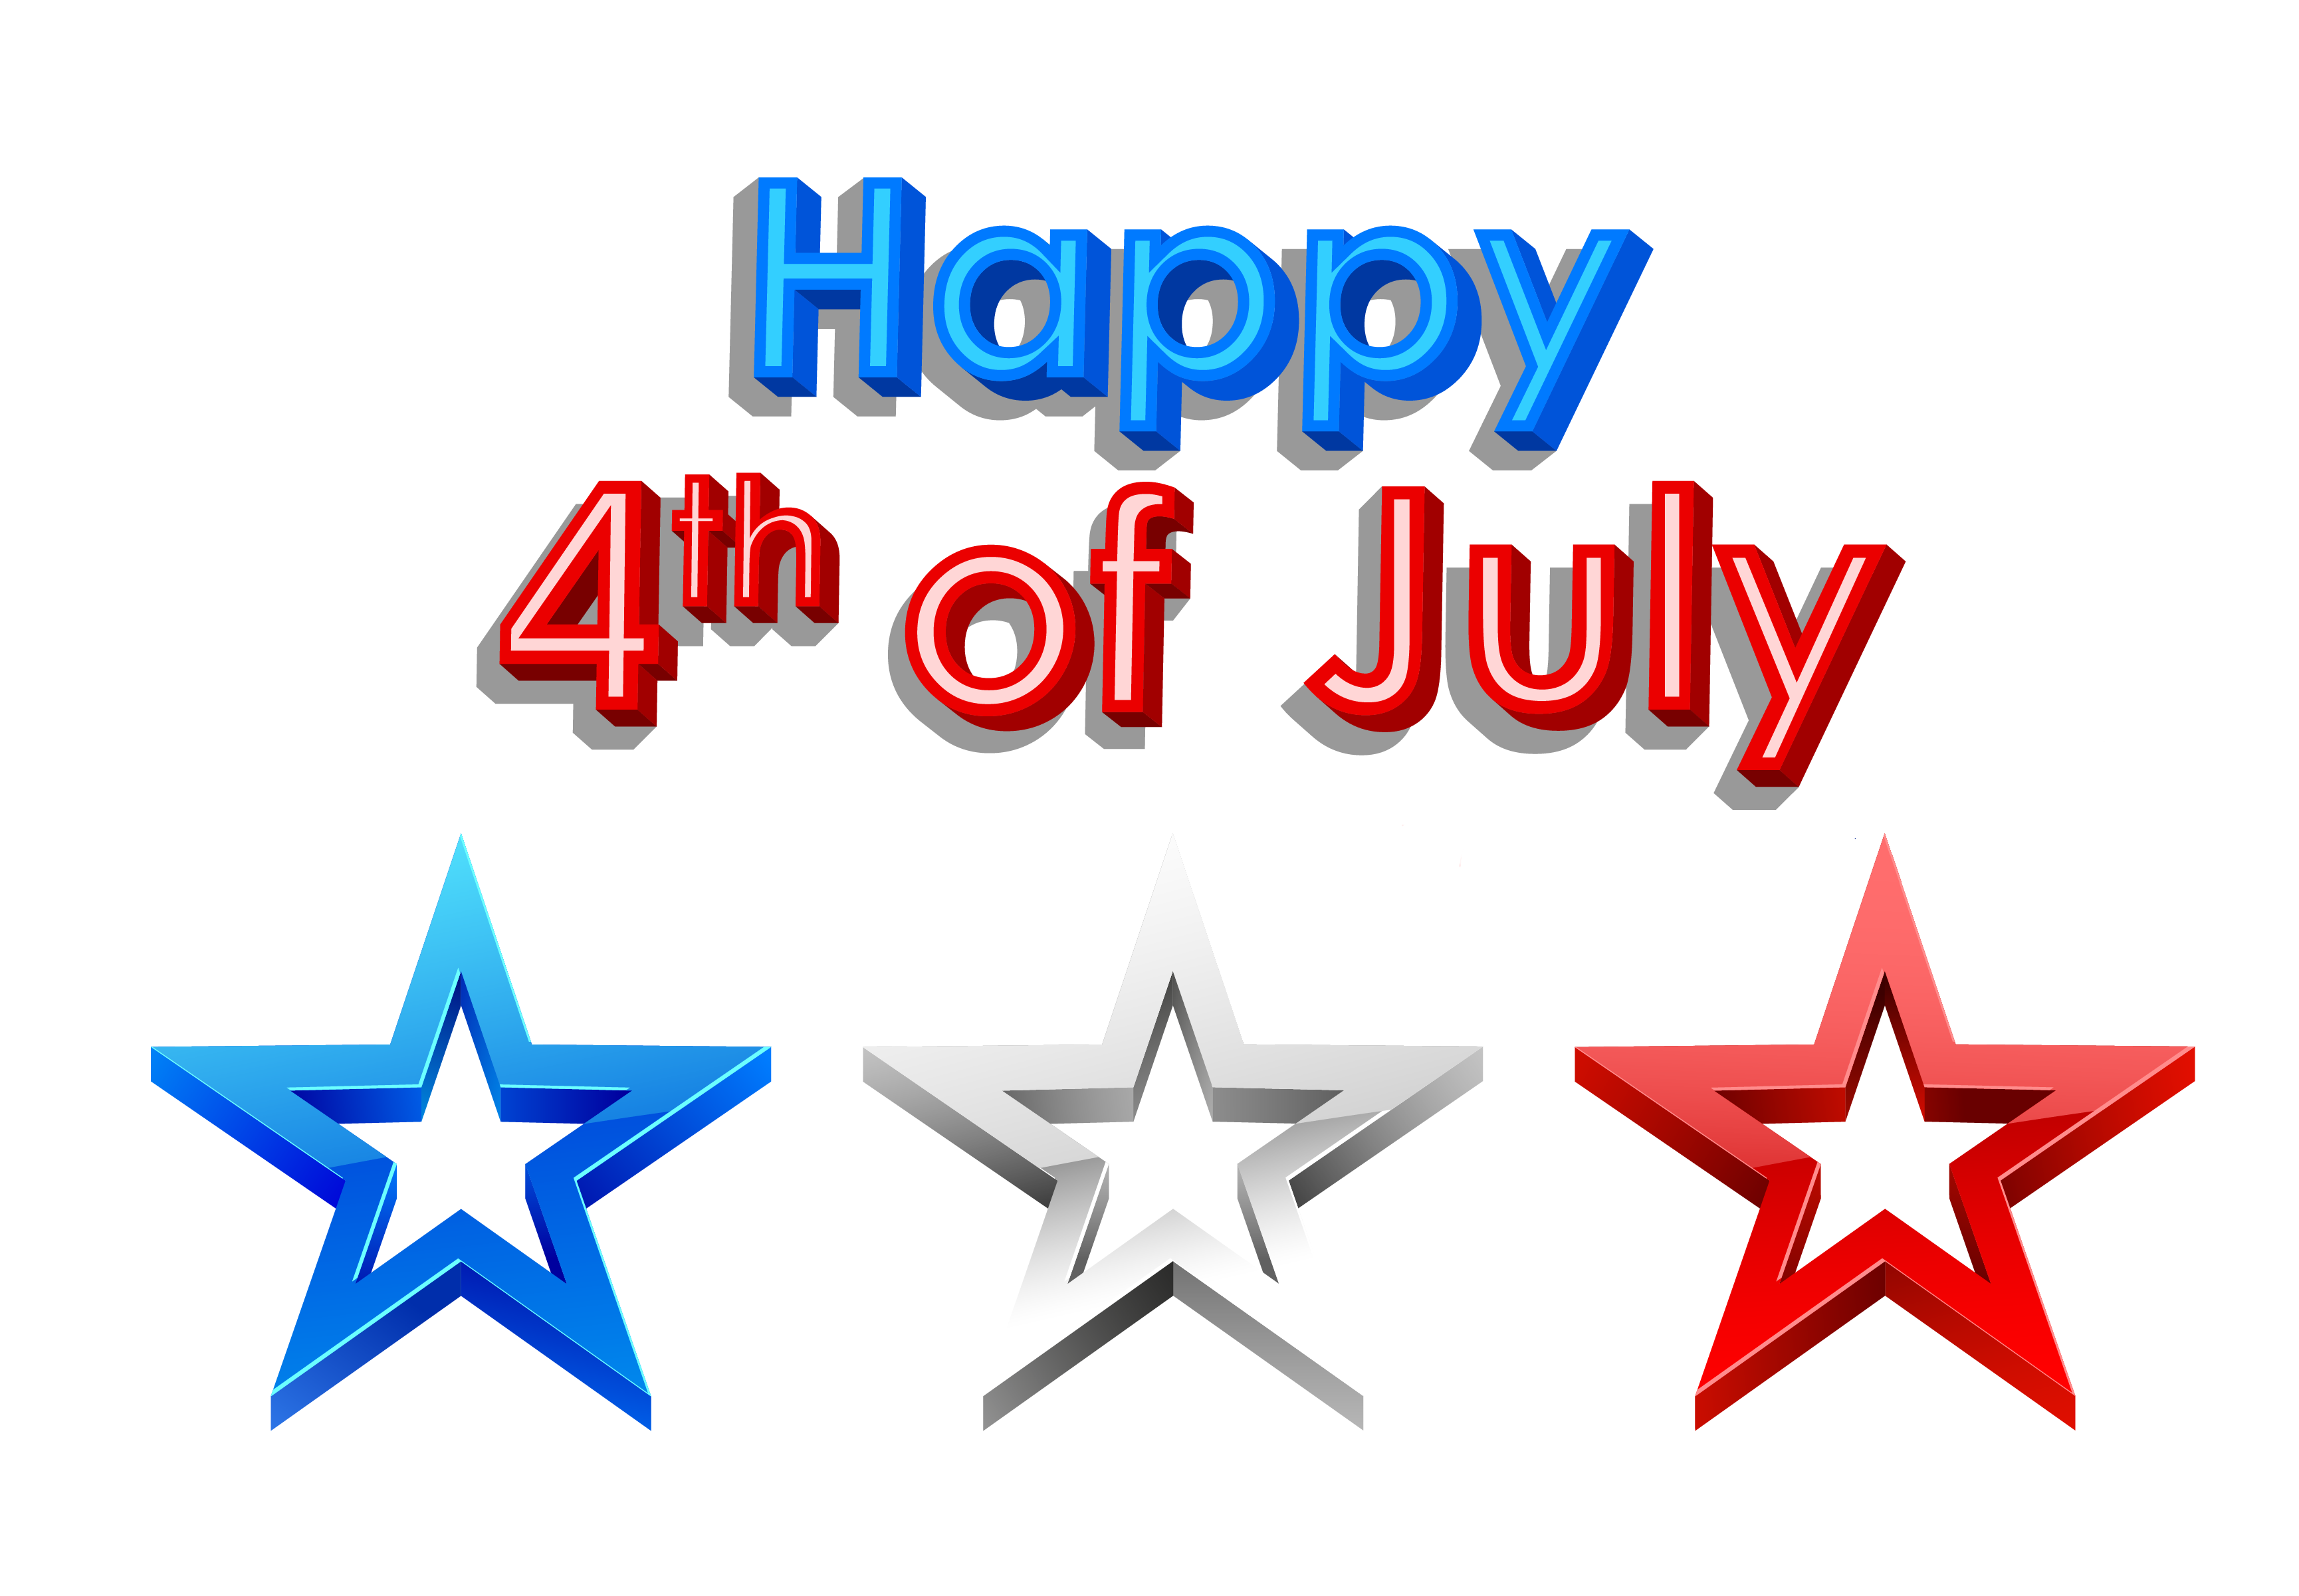 Happy 4th of July Clipart Pics Free